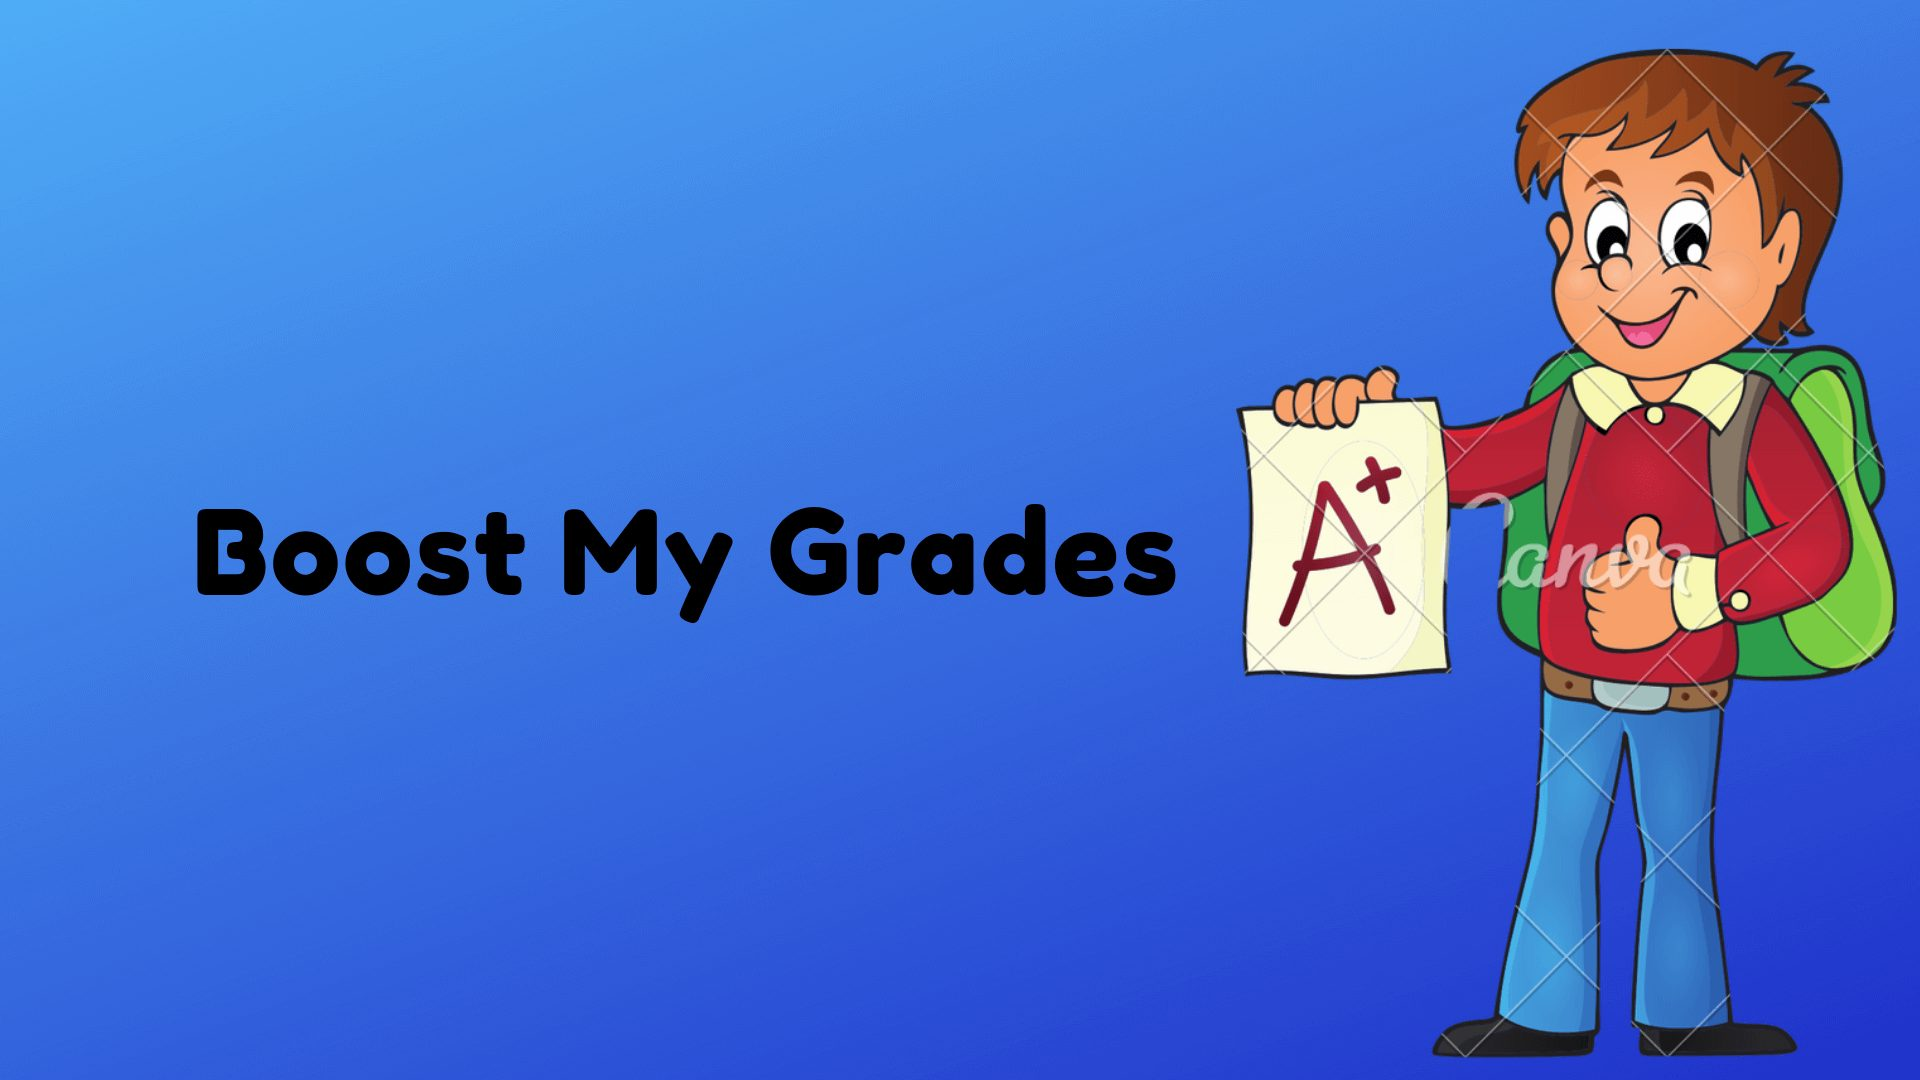 Pay Someone to take my online class for me | Boost my grades